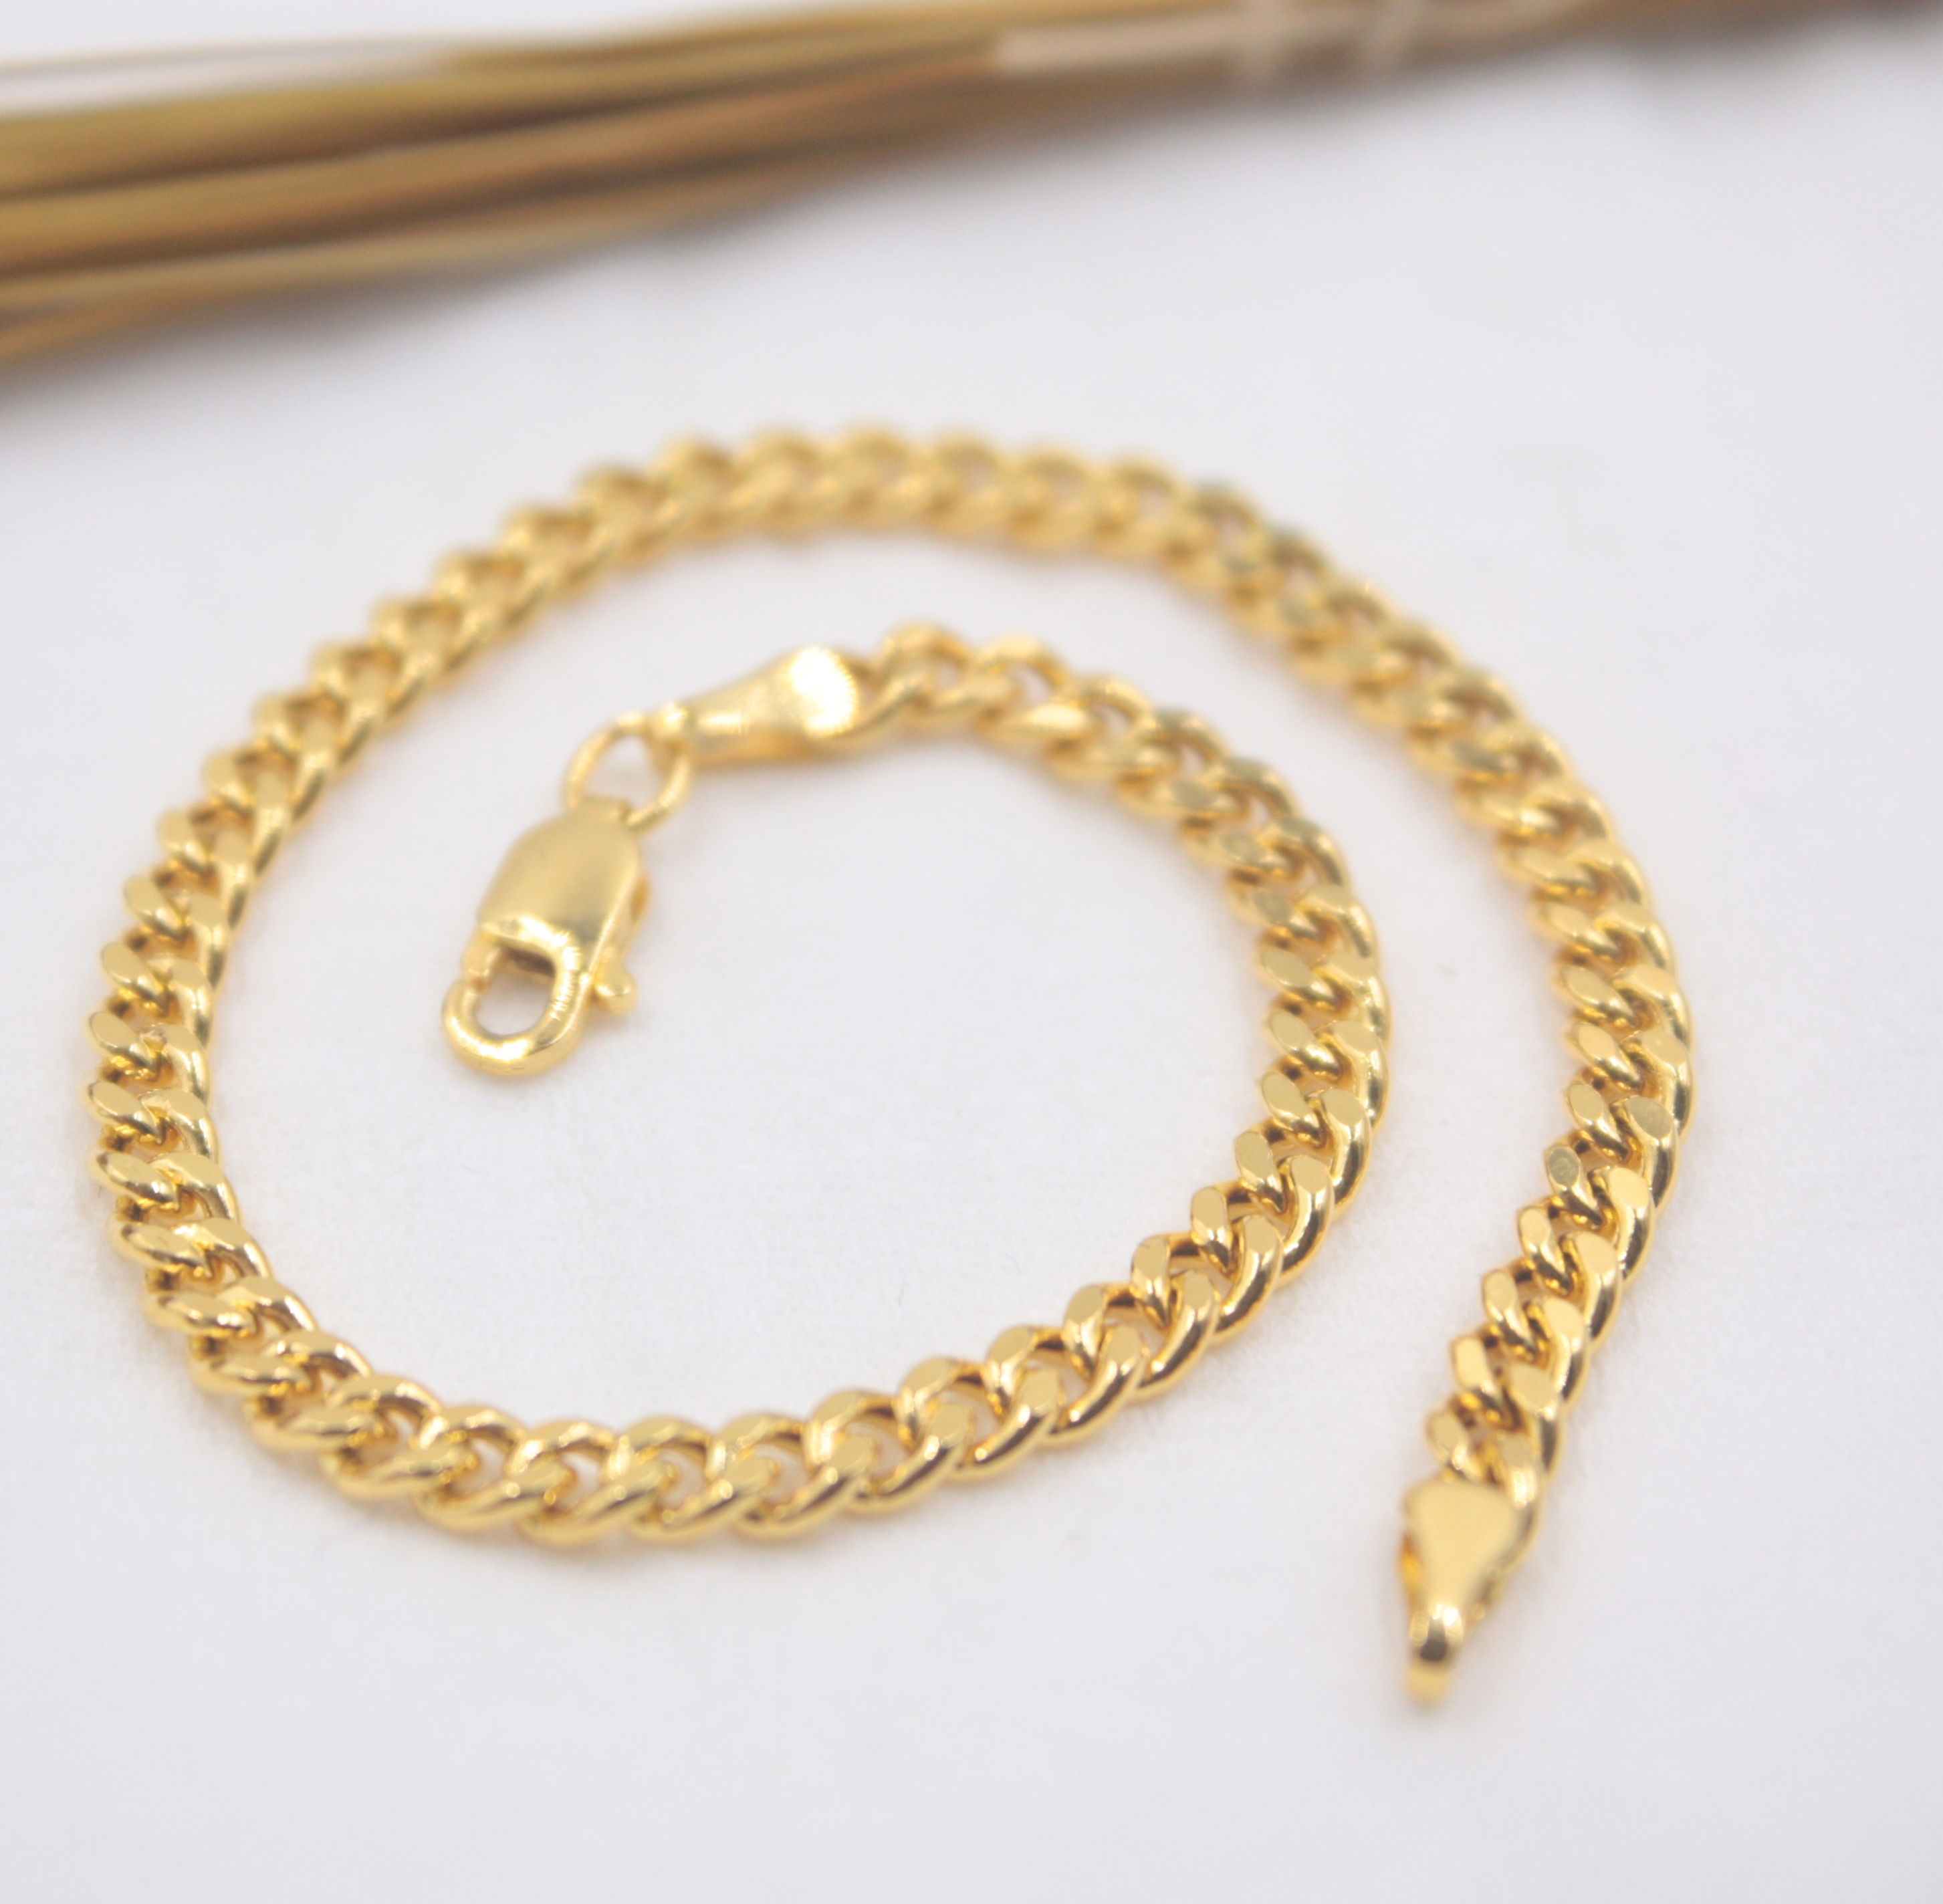 Au750 18K Yellow Gold Bracelet Woman's Curb Chain 3.5mm Women's Wheat Link 6.9''L